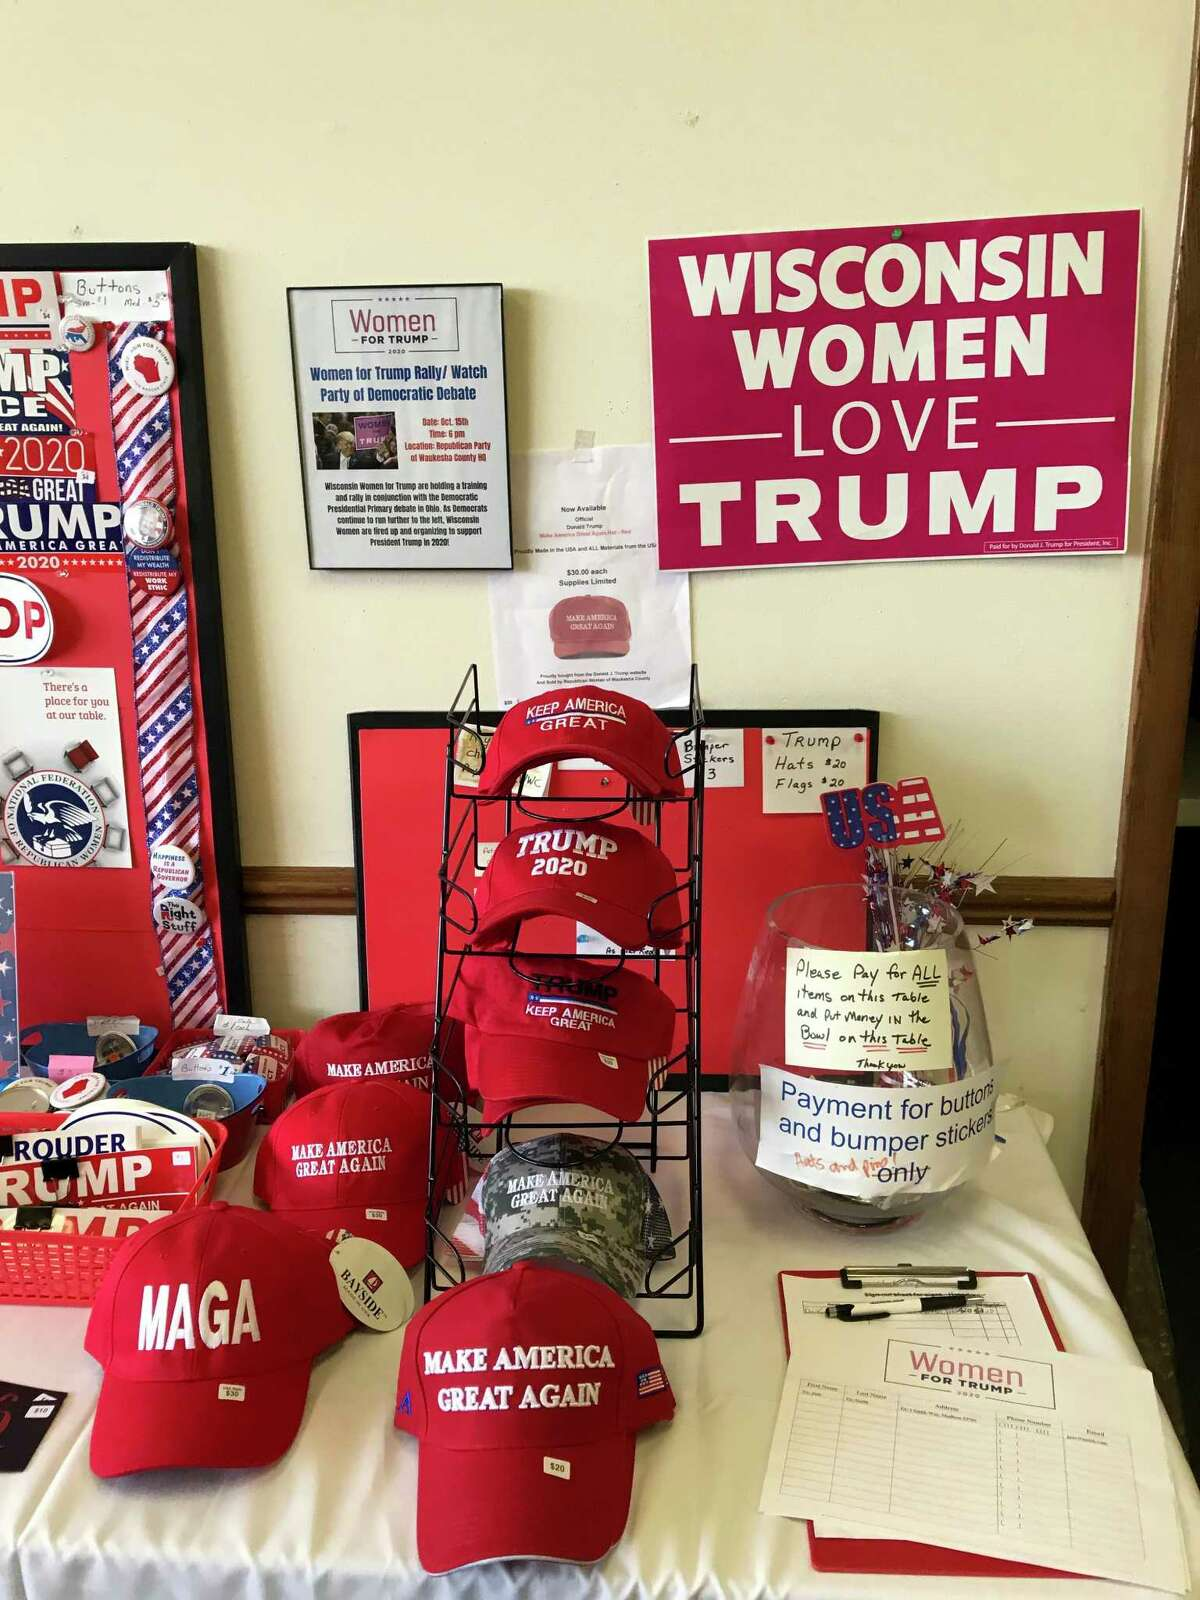 At Republican headquarters in Waukesha County, Wis., the party is trying to court female voters.